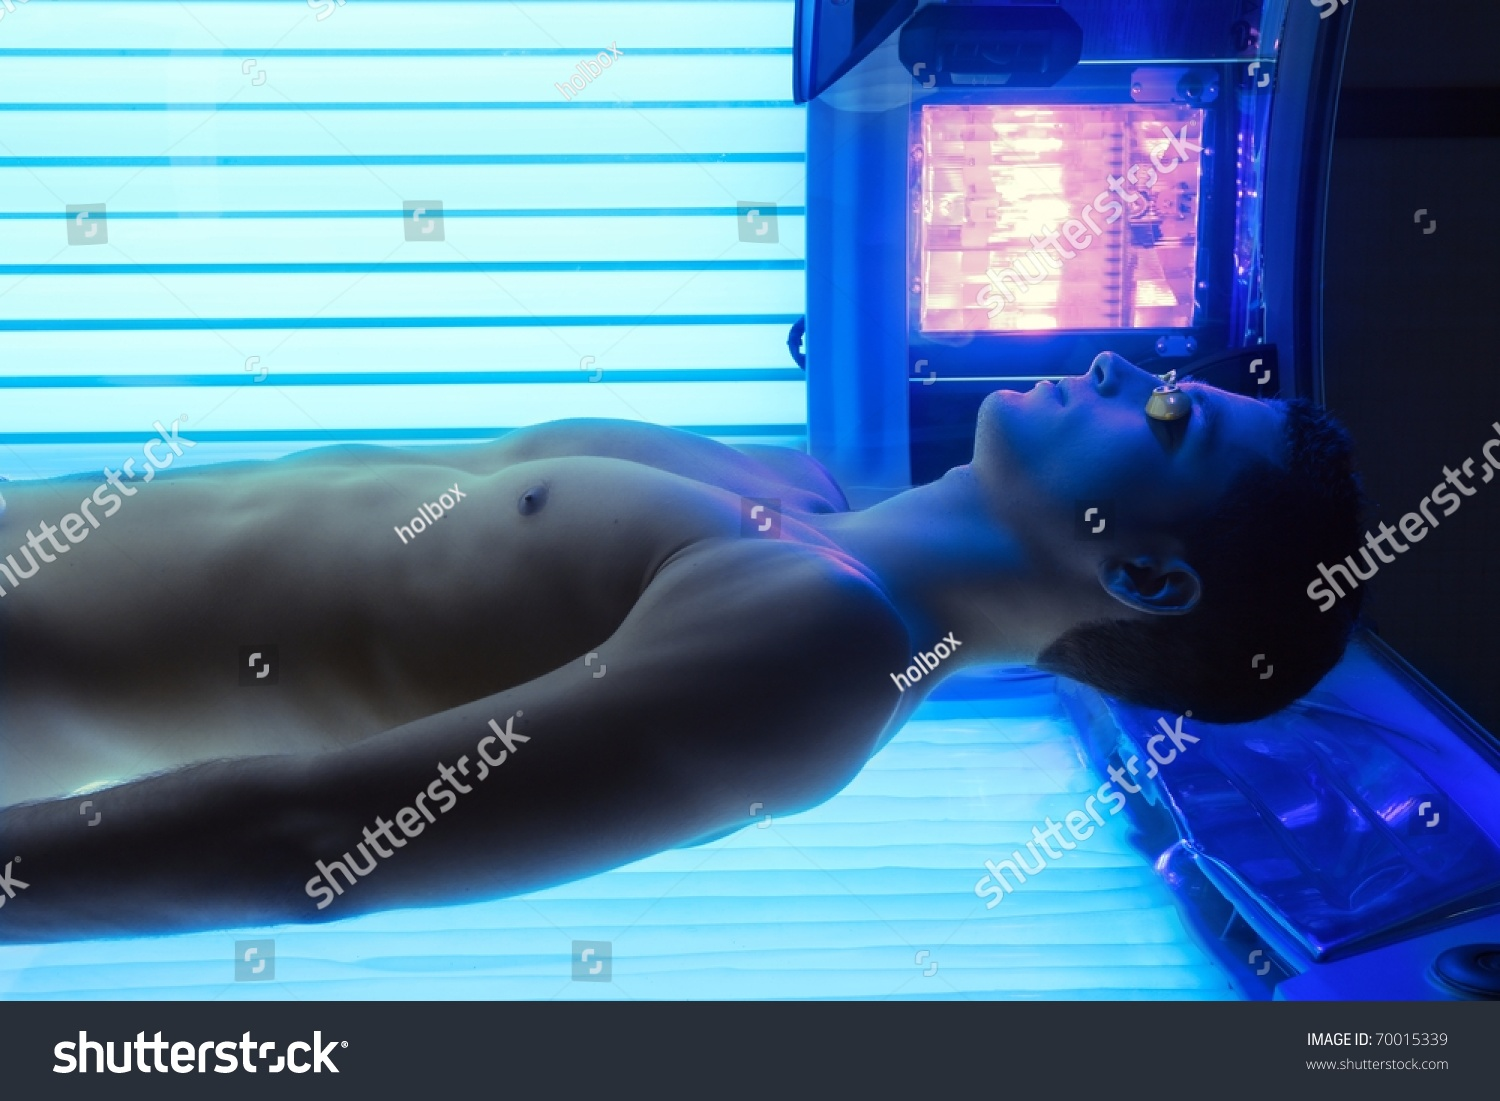 You can not be pregnant or solarium